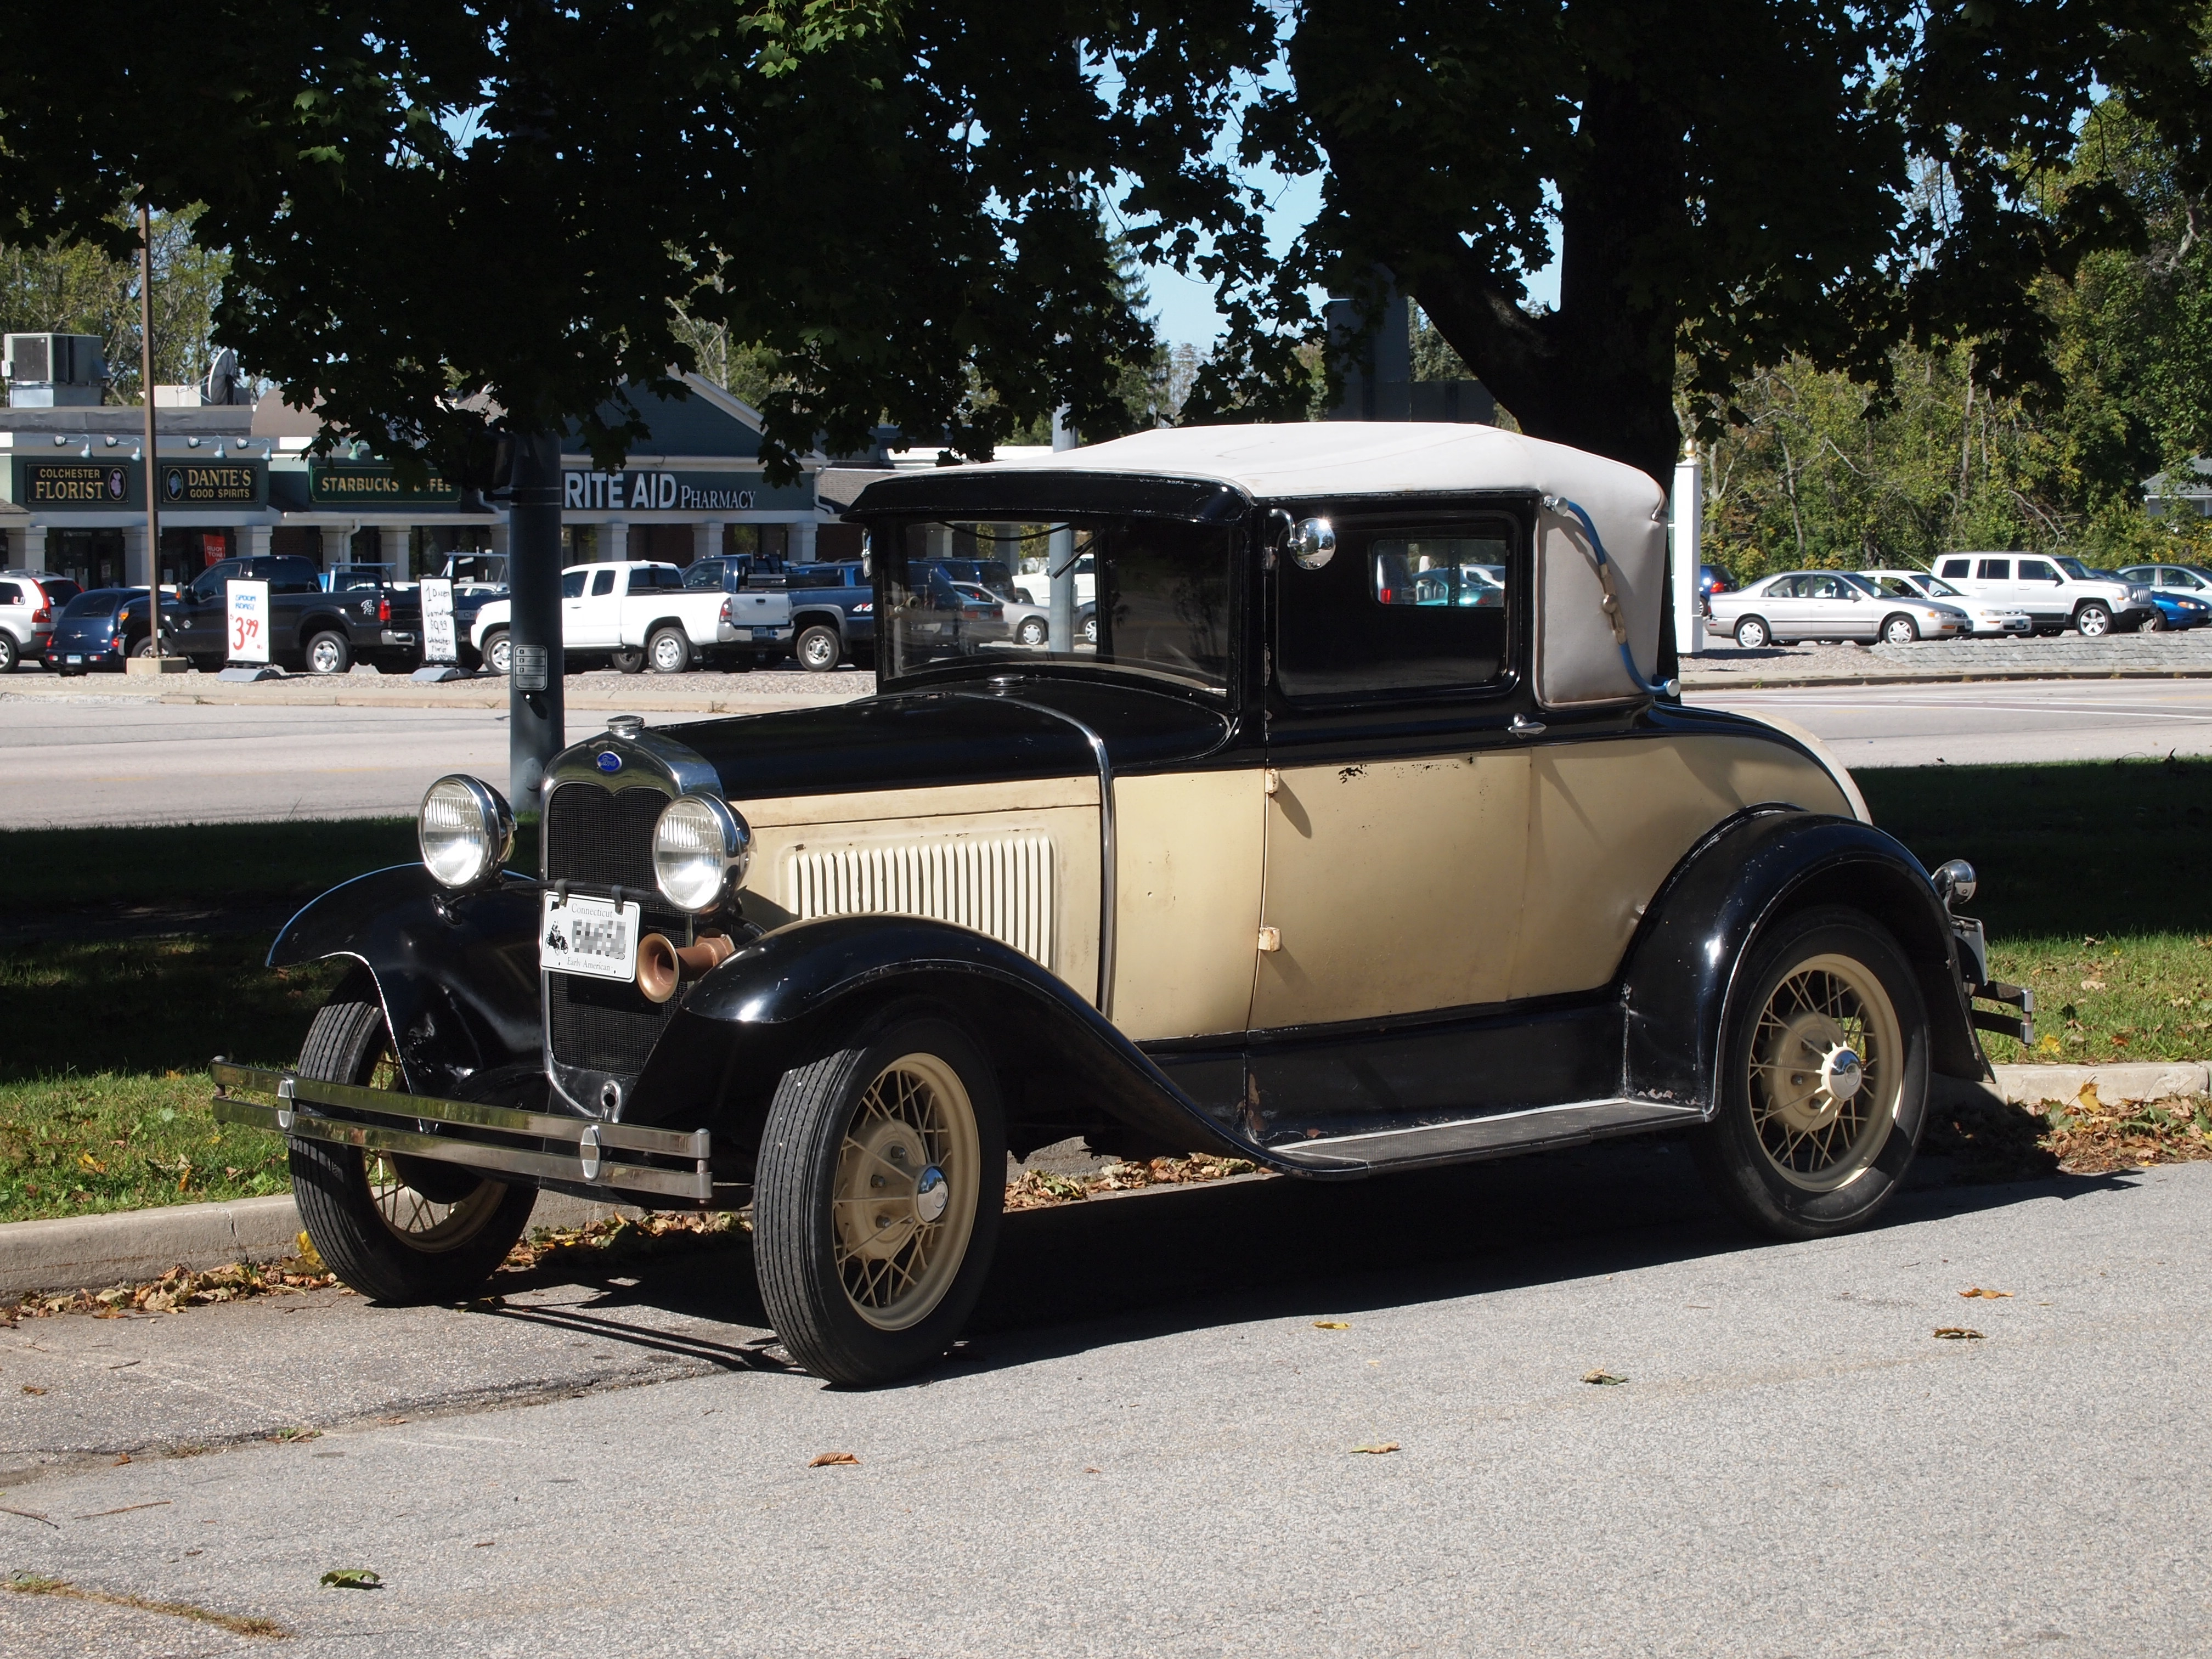 File:Vintage auto - Early American.jpg - Wikimedia Commons